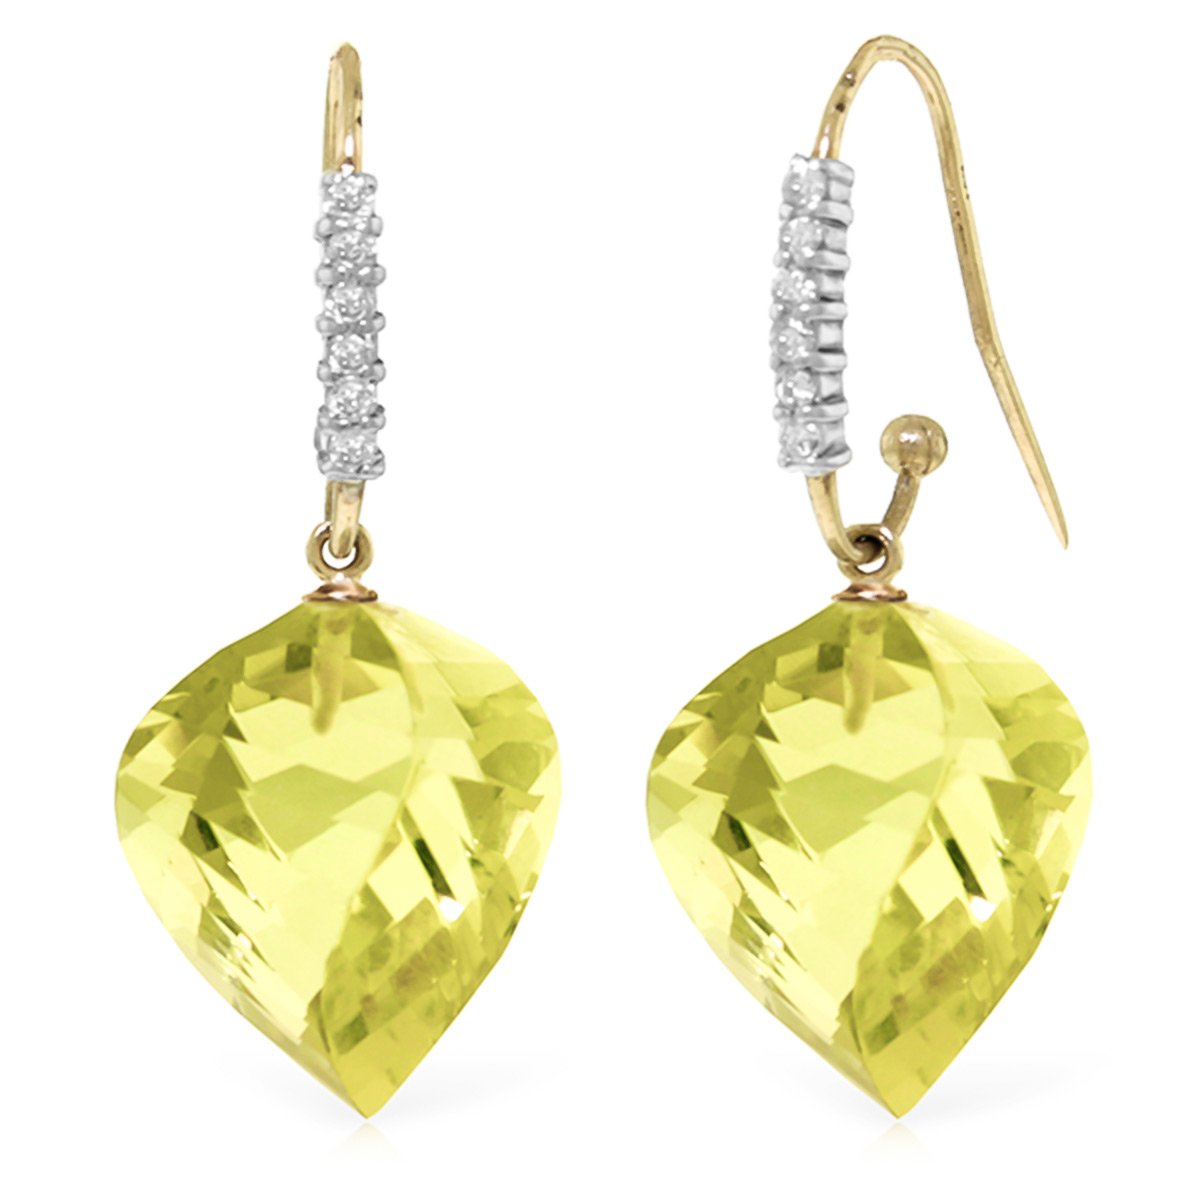 Lemon Quartz Drop Earrings 21.68 ctw in 9ct Gold